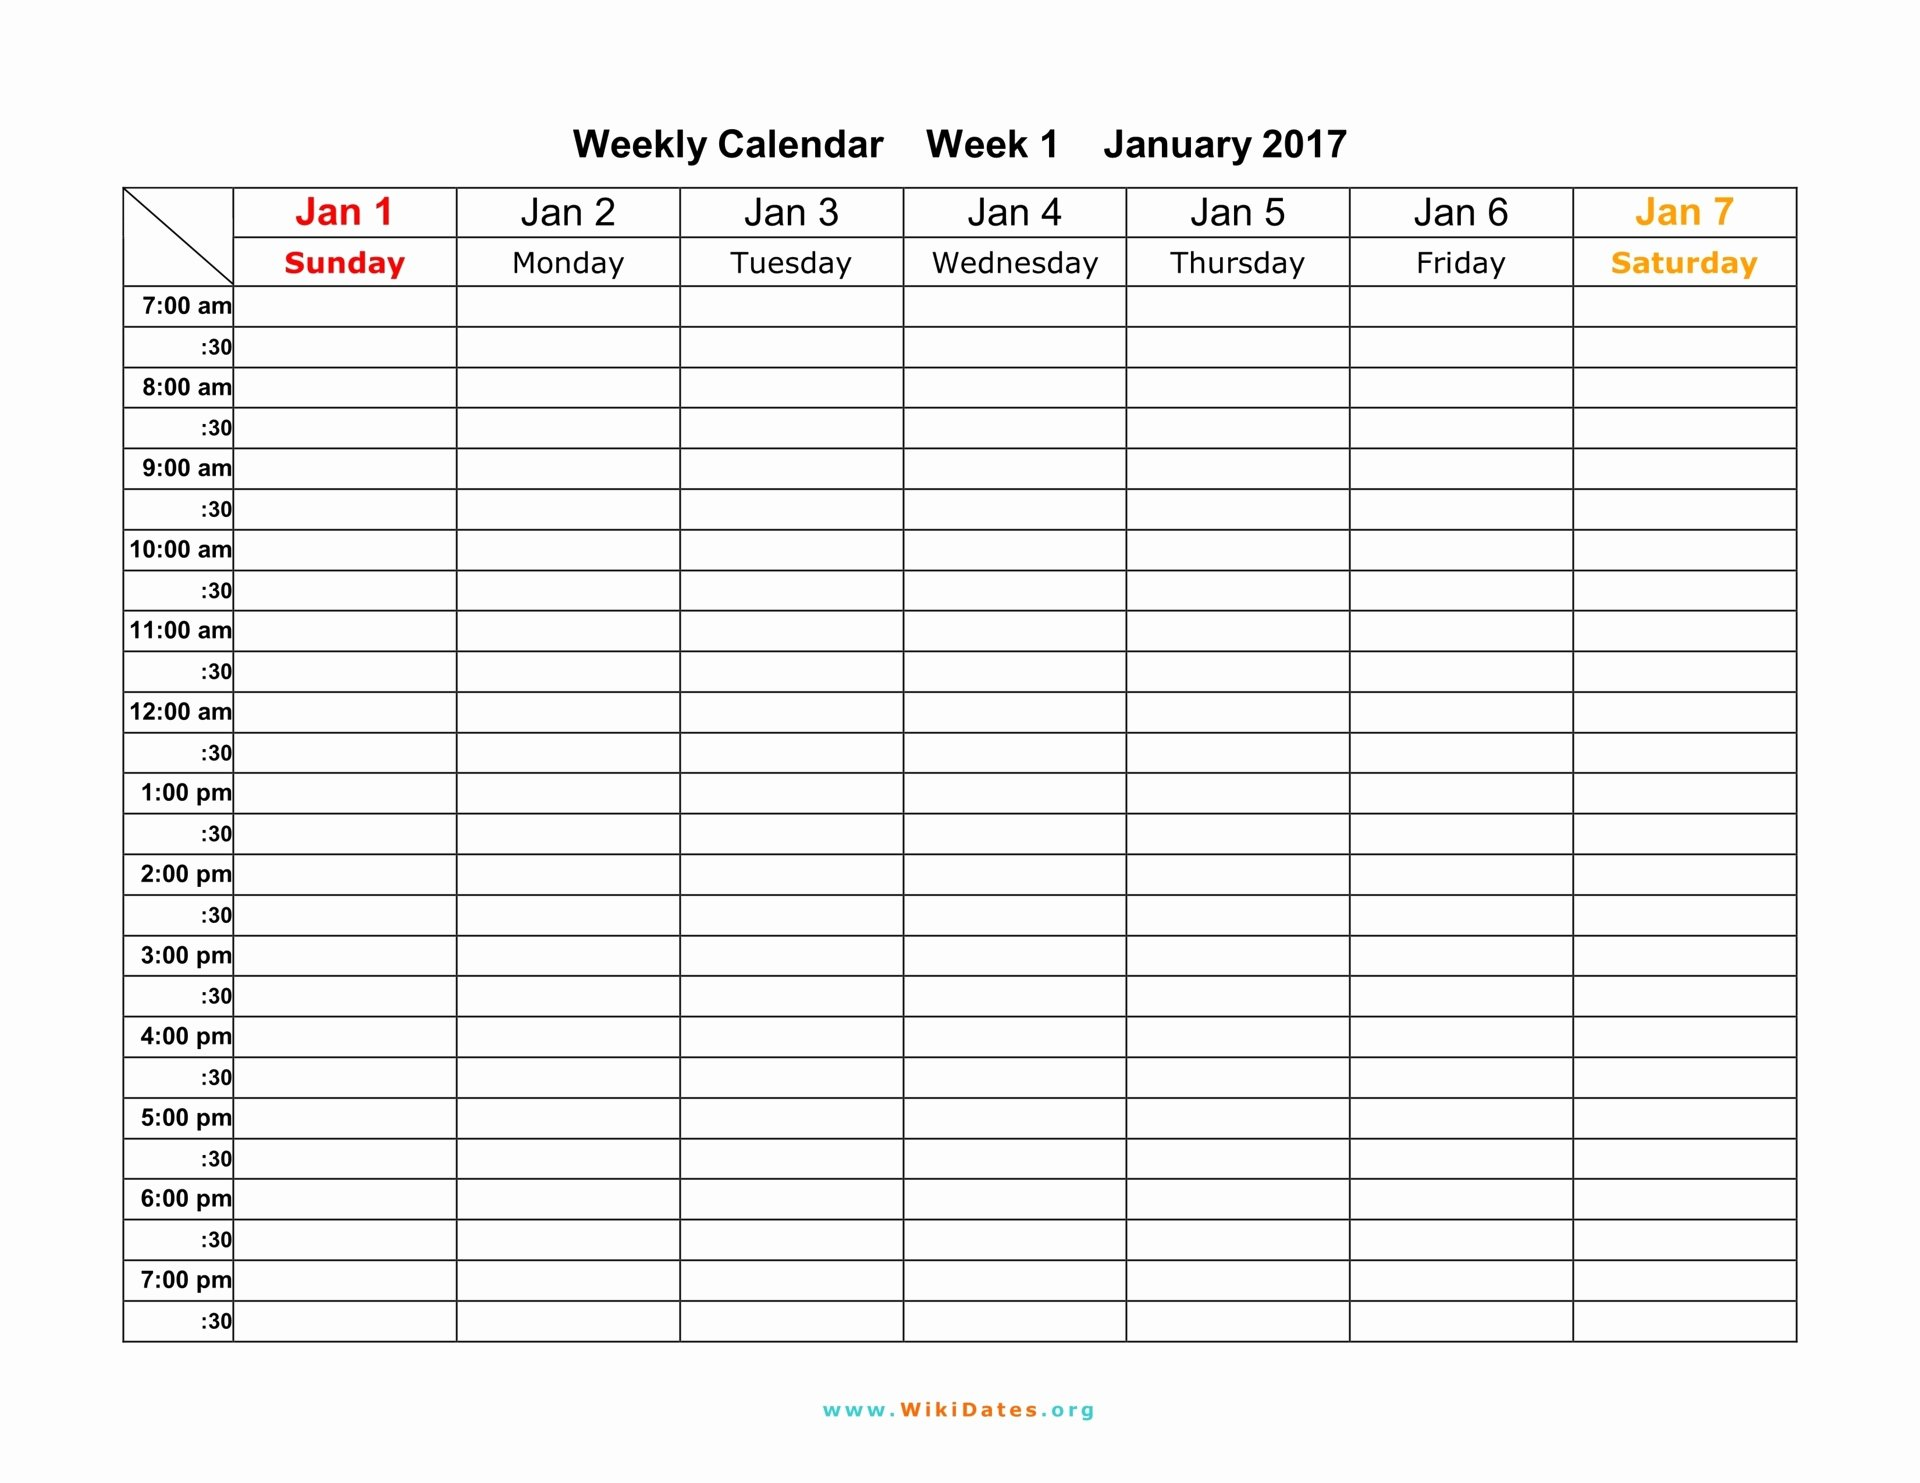 Week Schedule Template Pdf Beautiful Weekly Calendar Download Weekly Calendar 2017 and 2018